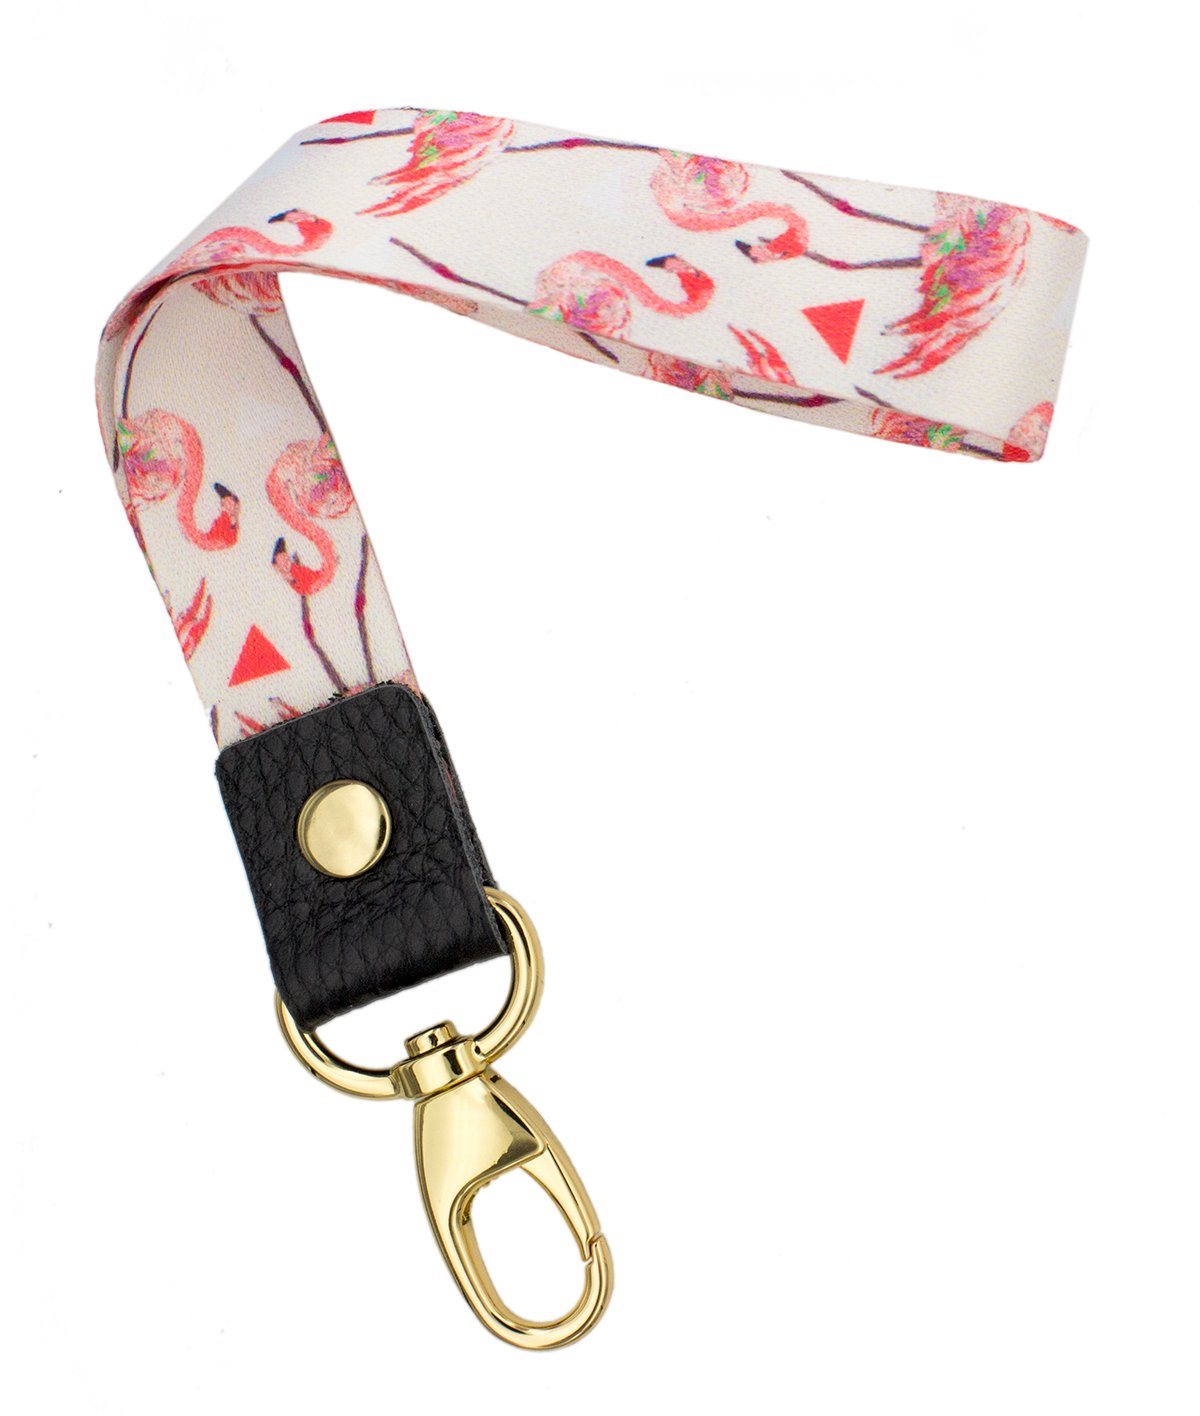 SENLLY Flamingo Hand Wrist Lanyard Premium Quality Wristlet Strap with Metal Clasp and Genuine Leather, for Key Chain, Camera, Cell Mobile Phone, Charms, Lightweight Items etc